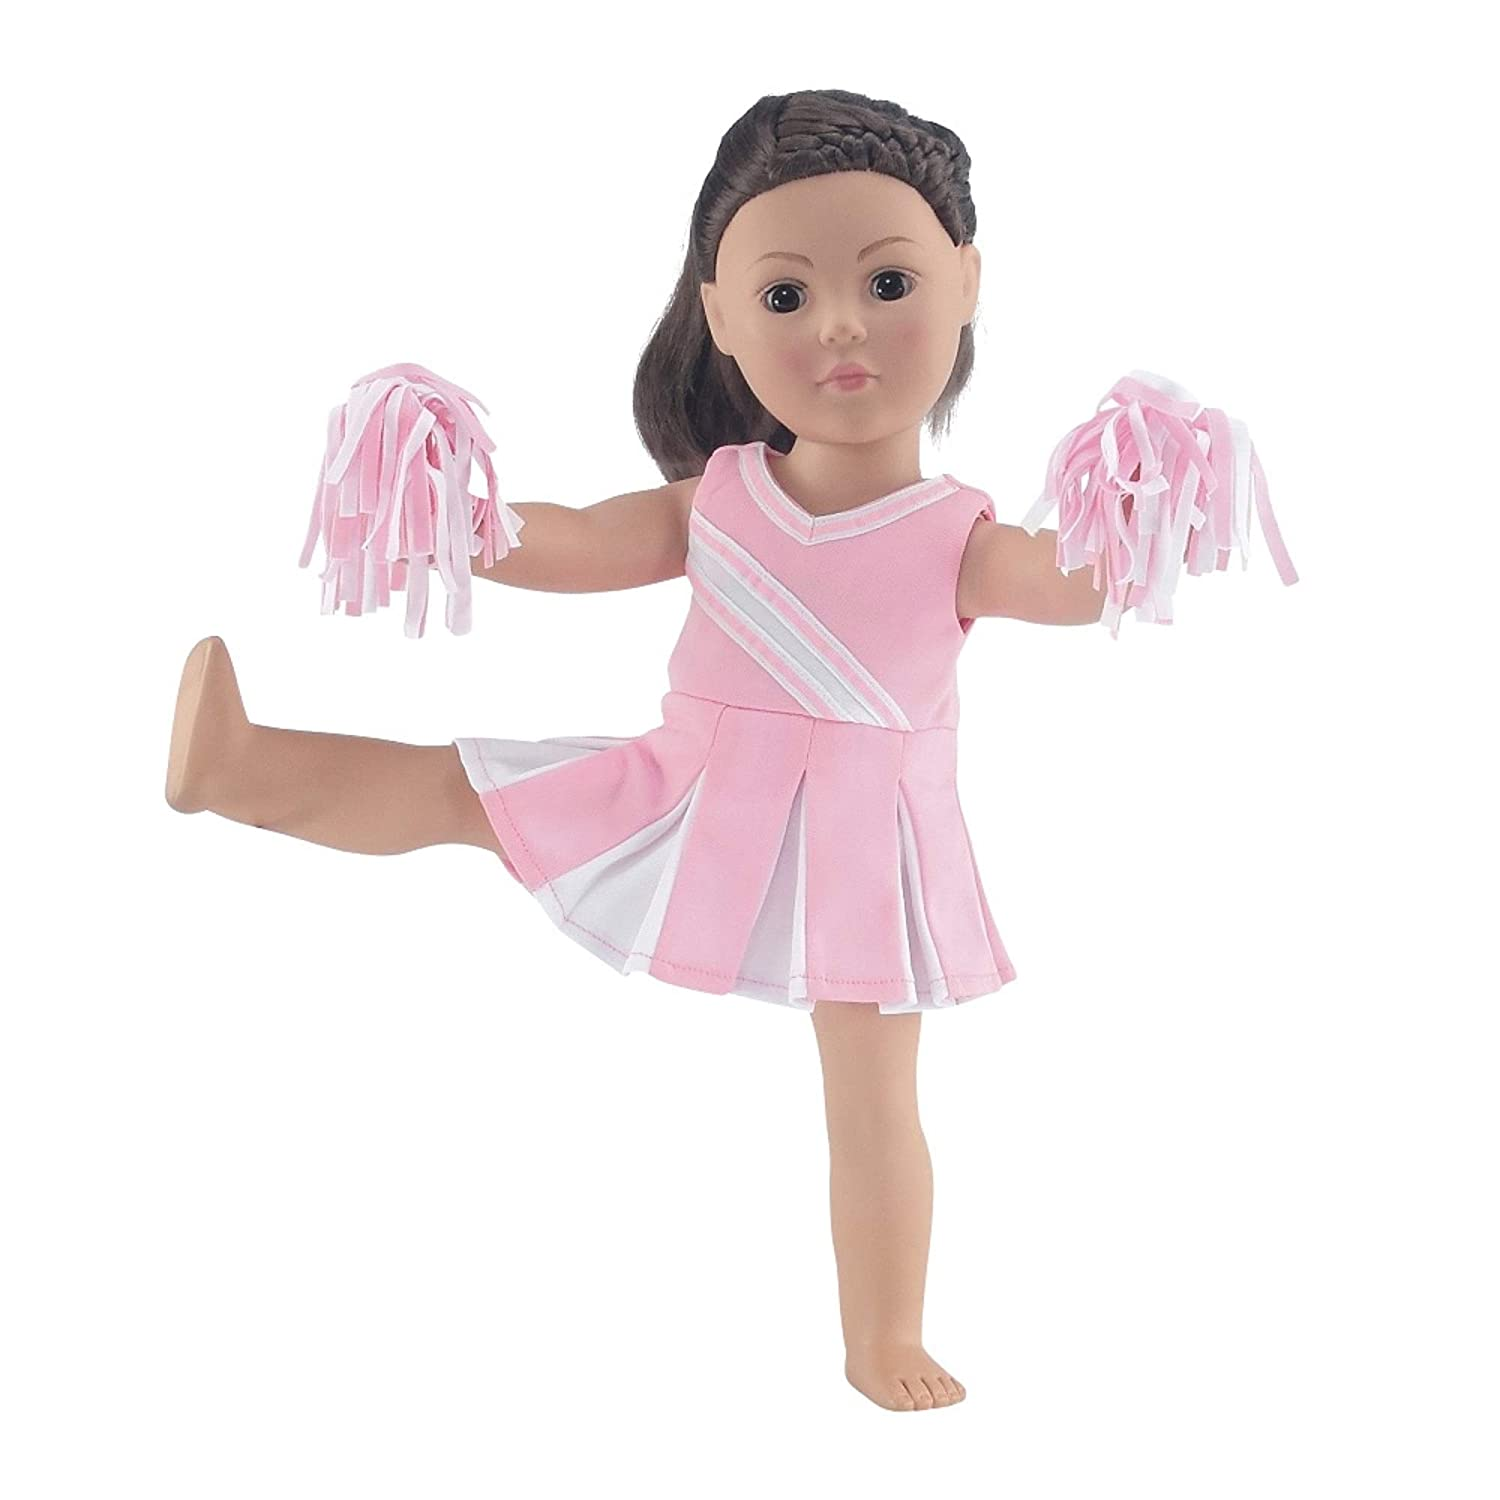 Doll Clothes Fit American Girl Doll - Pink Cheerleader Outfit - 18 Inch Clothing with 18' Accessories Emily Rose Doll Clothes